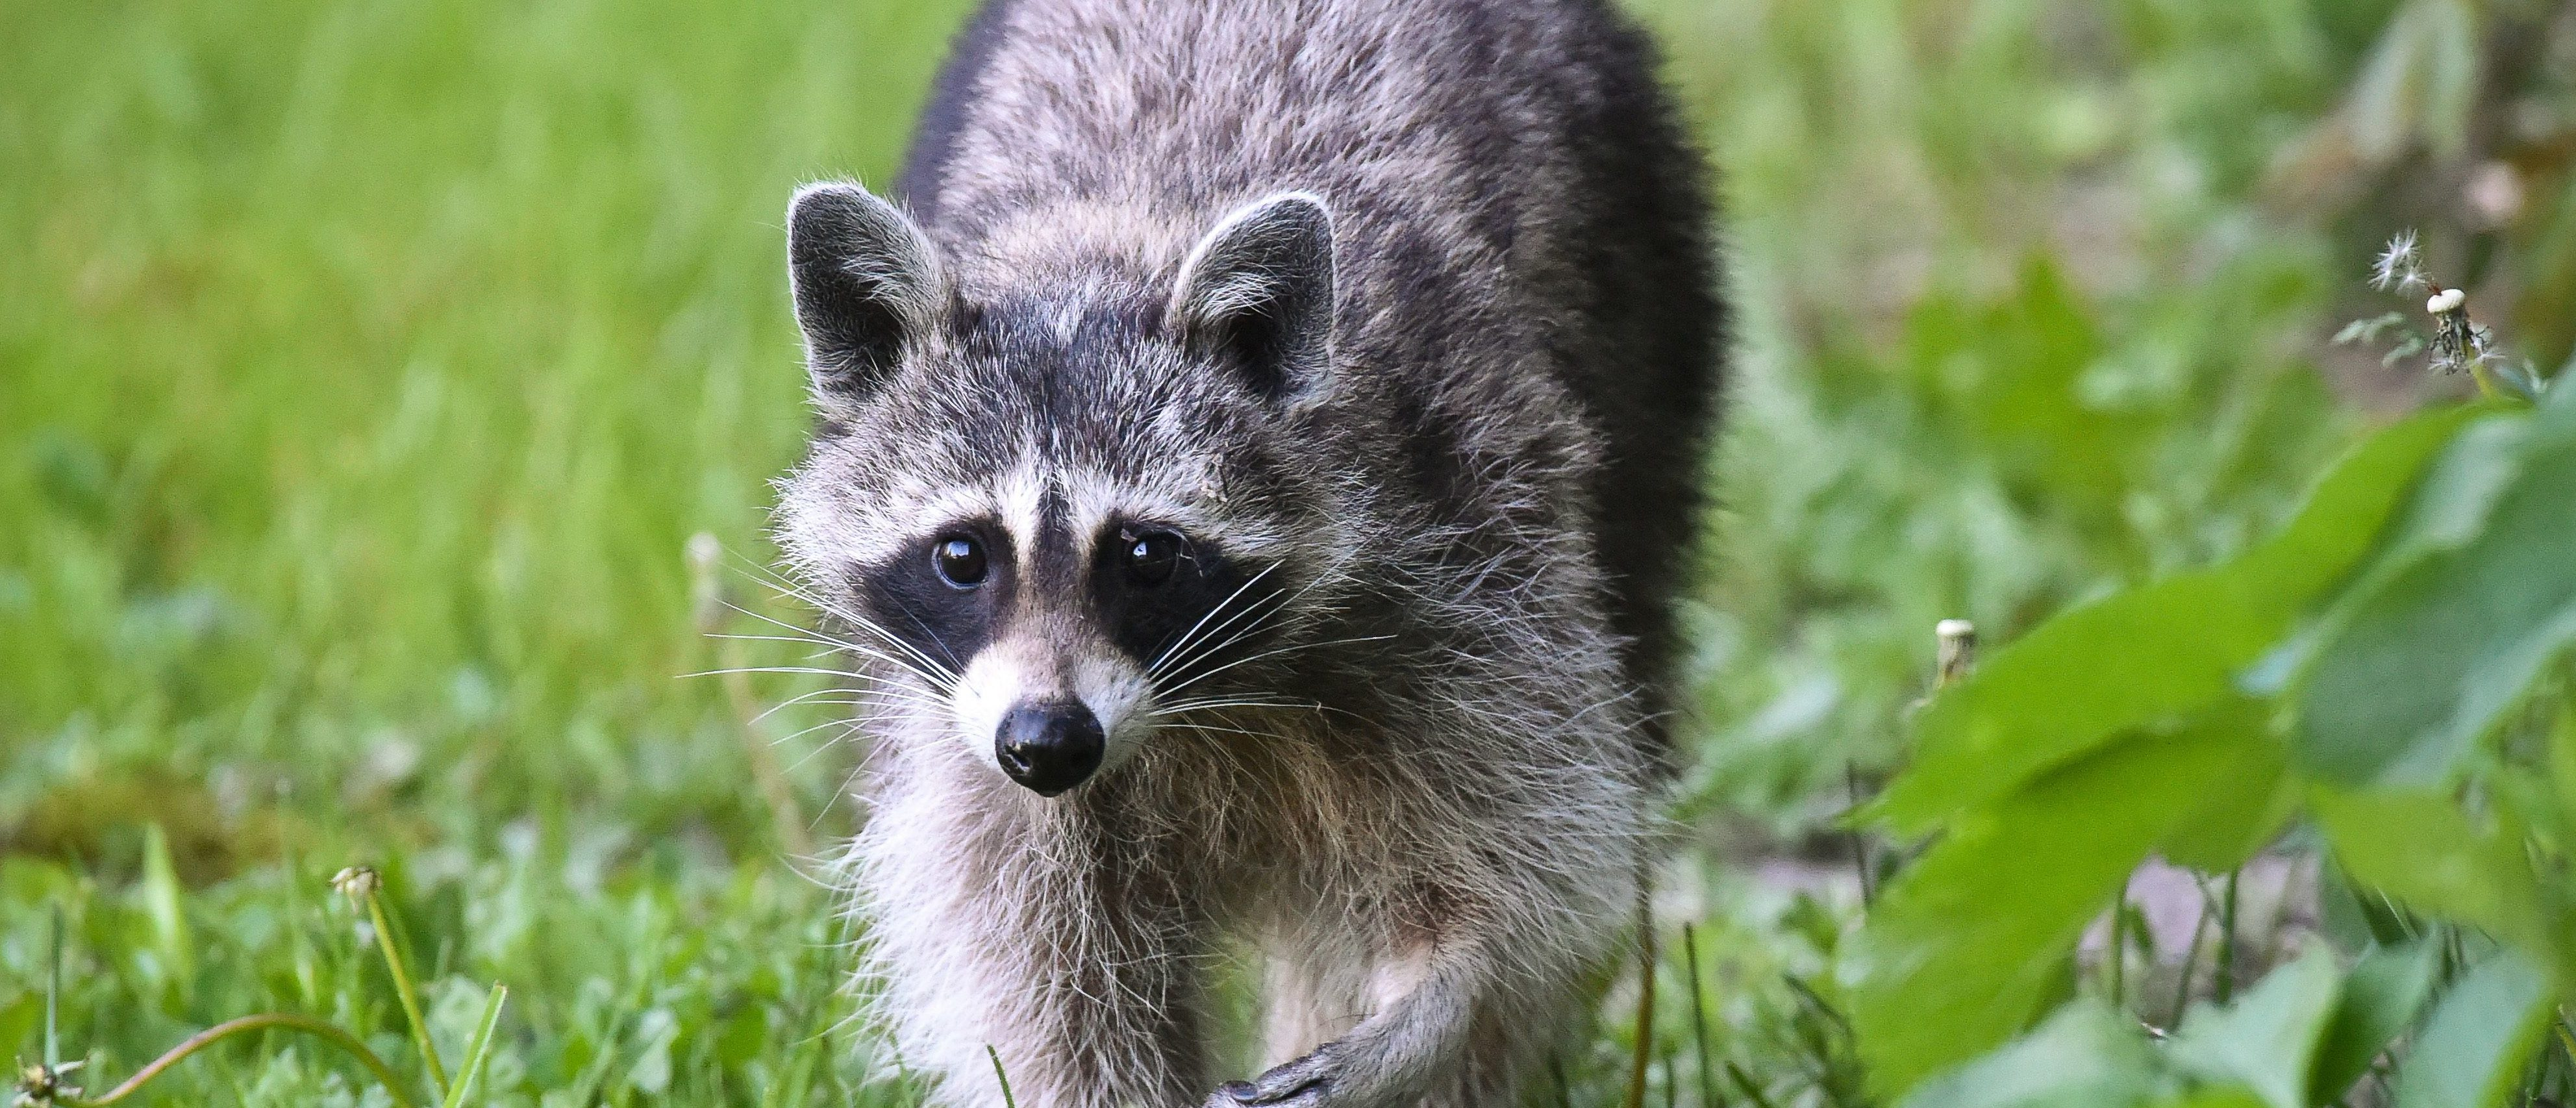 This picture taken on May 11, 2014 shows a racoon, in Sieversdorf near Brandenburg, eastern Germany. / AFP / dpa / Patrick Pleul / Germany OUT (Photo credit should read PATRICK PLEUL/AFP/Getty Images)